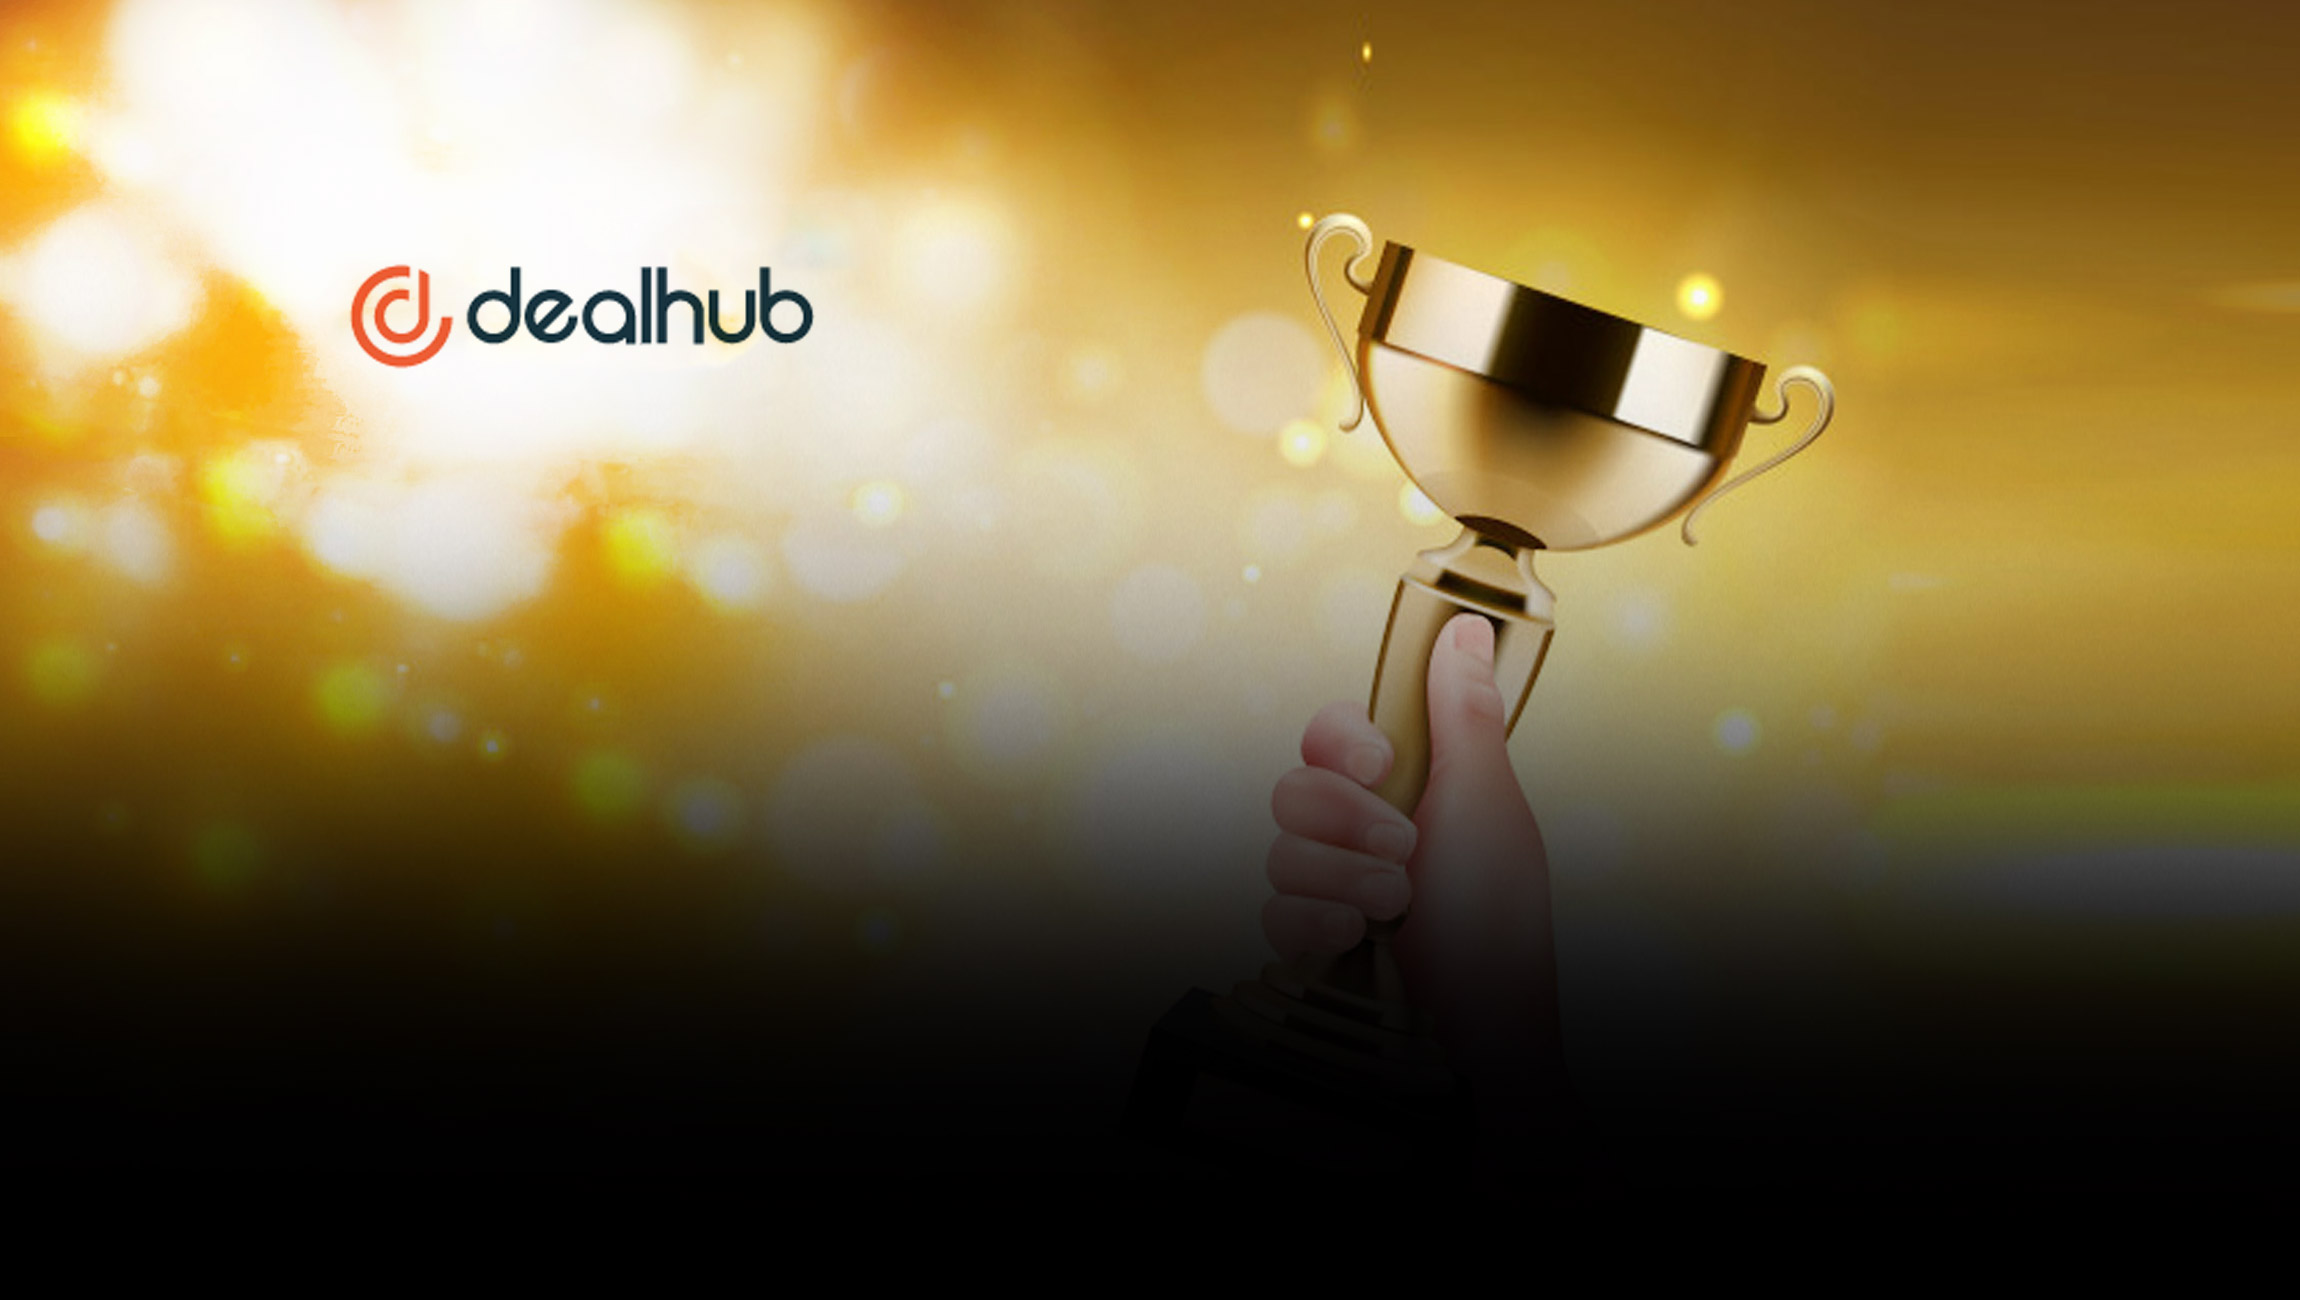 DealHub Recognized as Part of Top 50 Best Sales Products in 2021 by G2 Software Awards